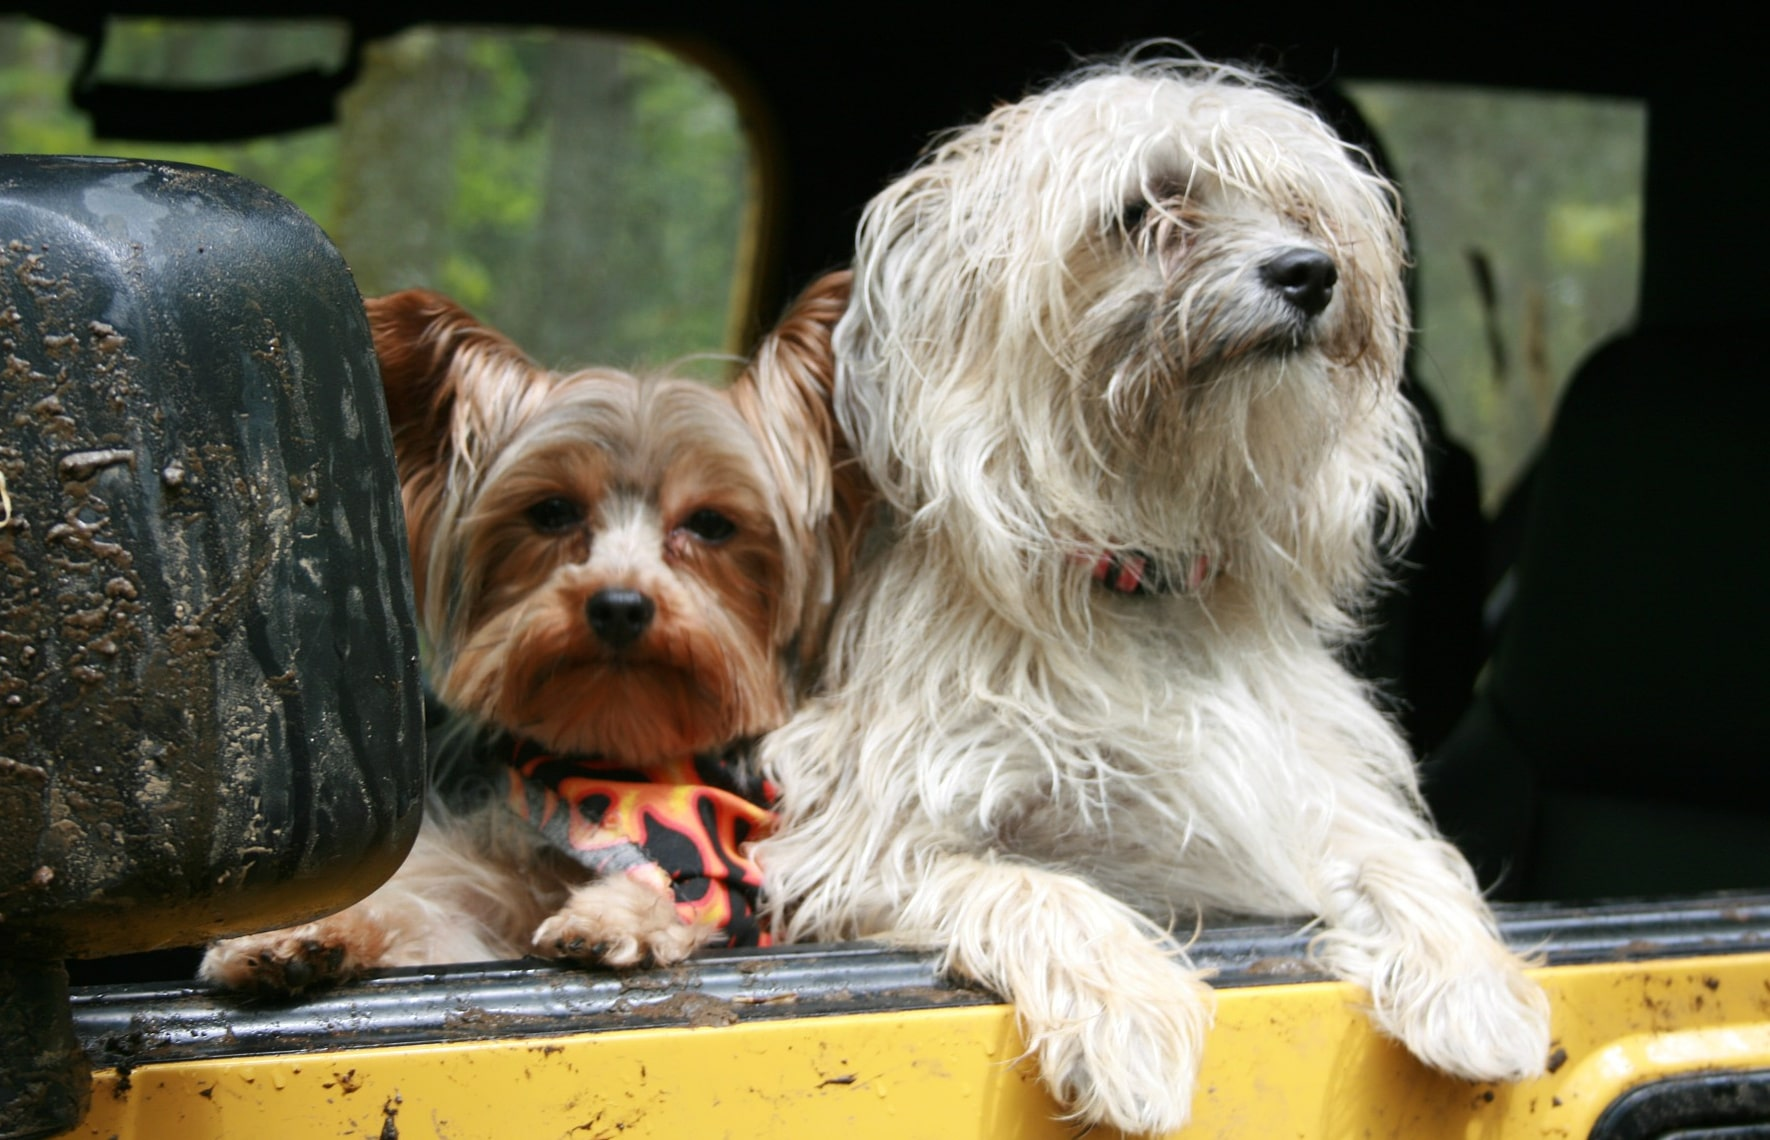 Preventing Poop Disaster When Travelling With Your Dog